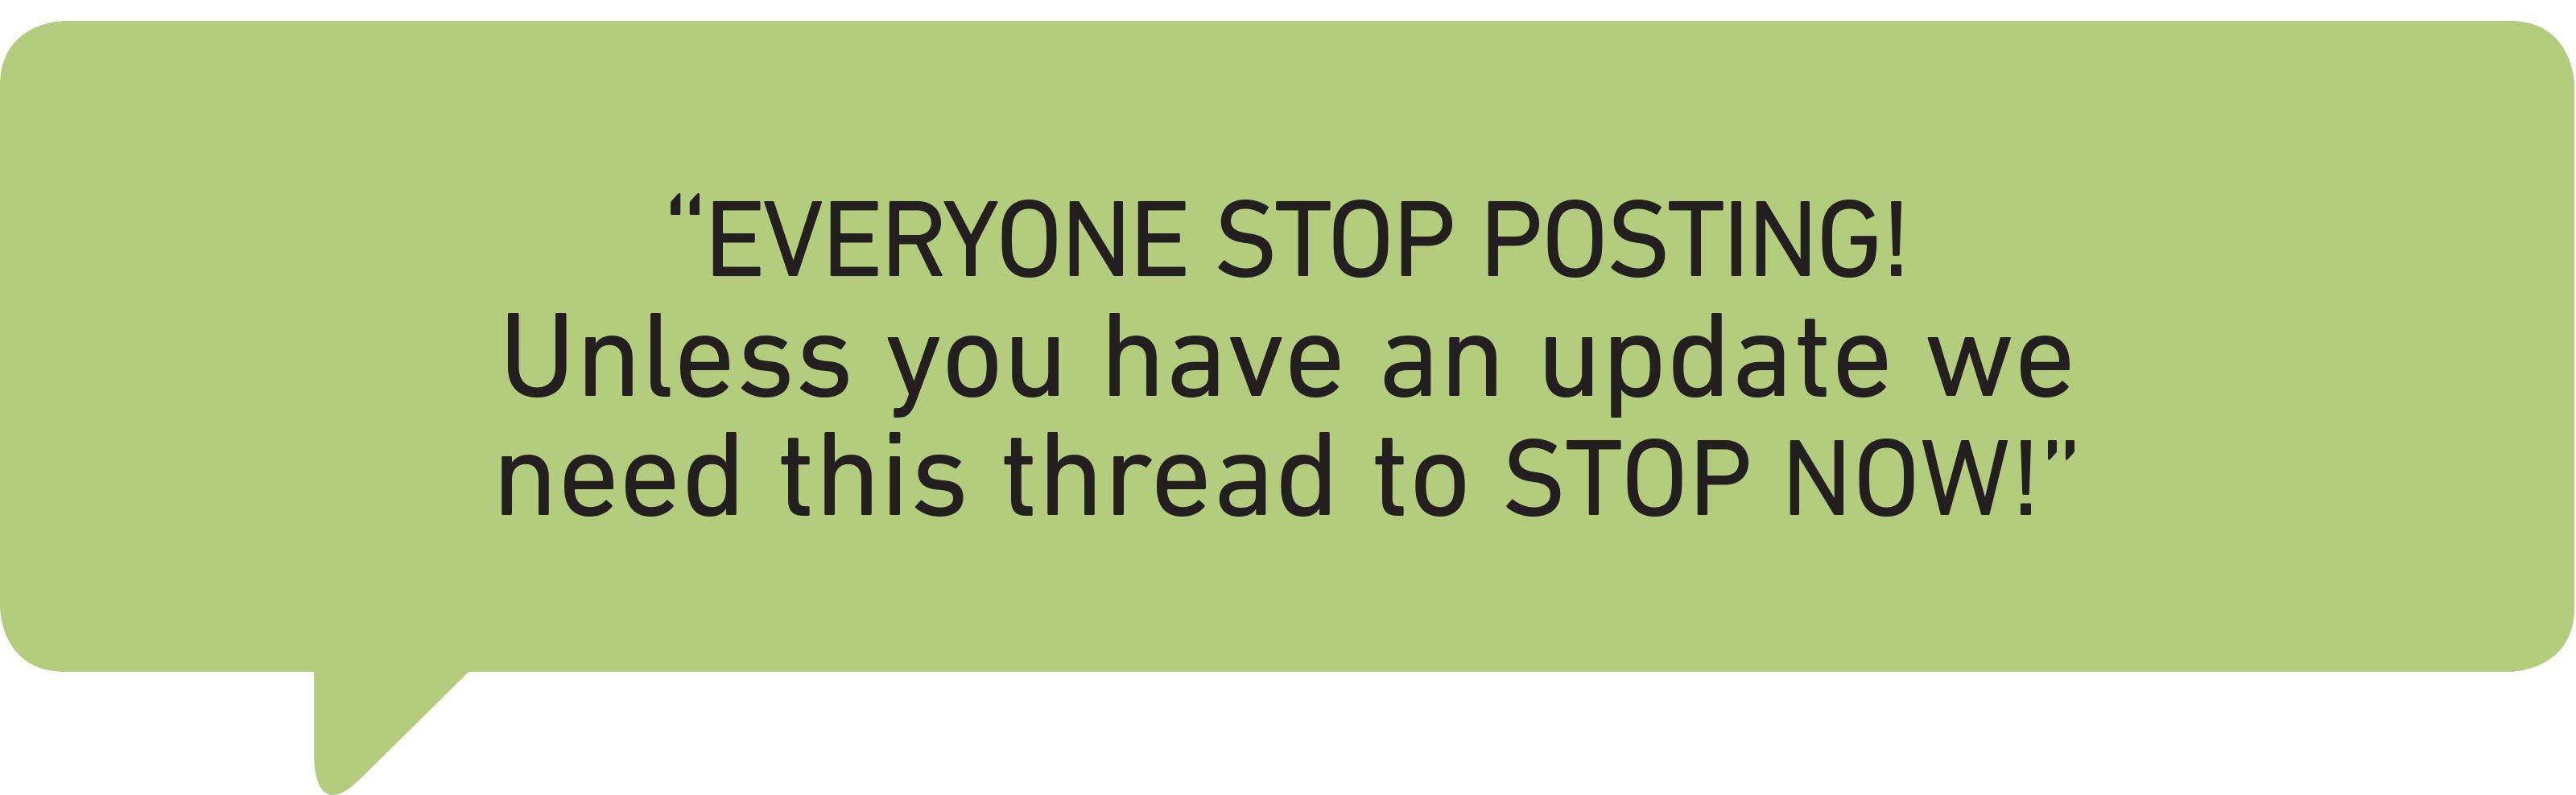 """""""EVERYONE STOP POSTING! Unless you have an update we need this thread to STOP NOW!"""""""